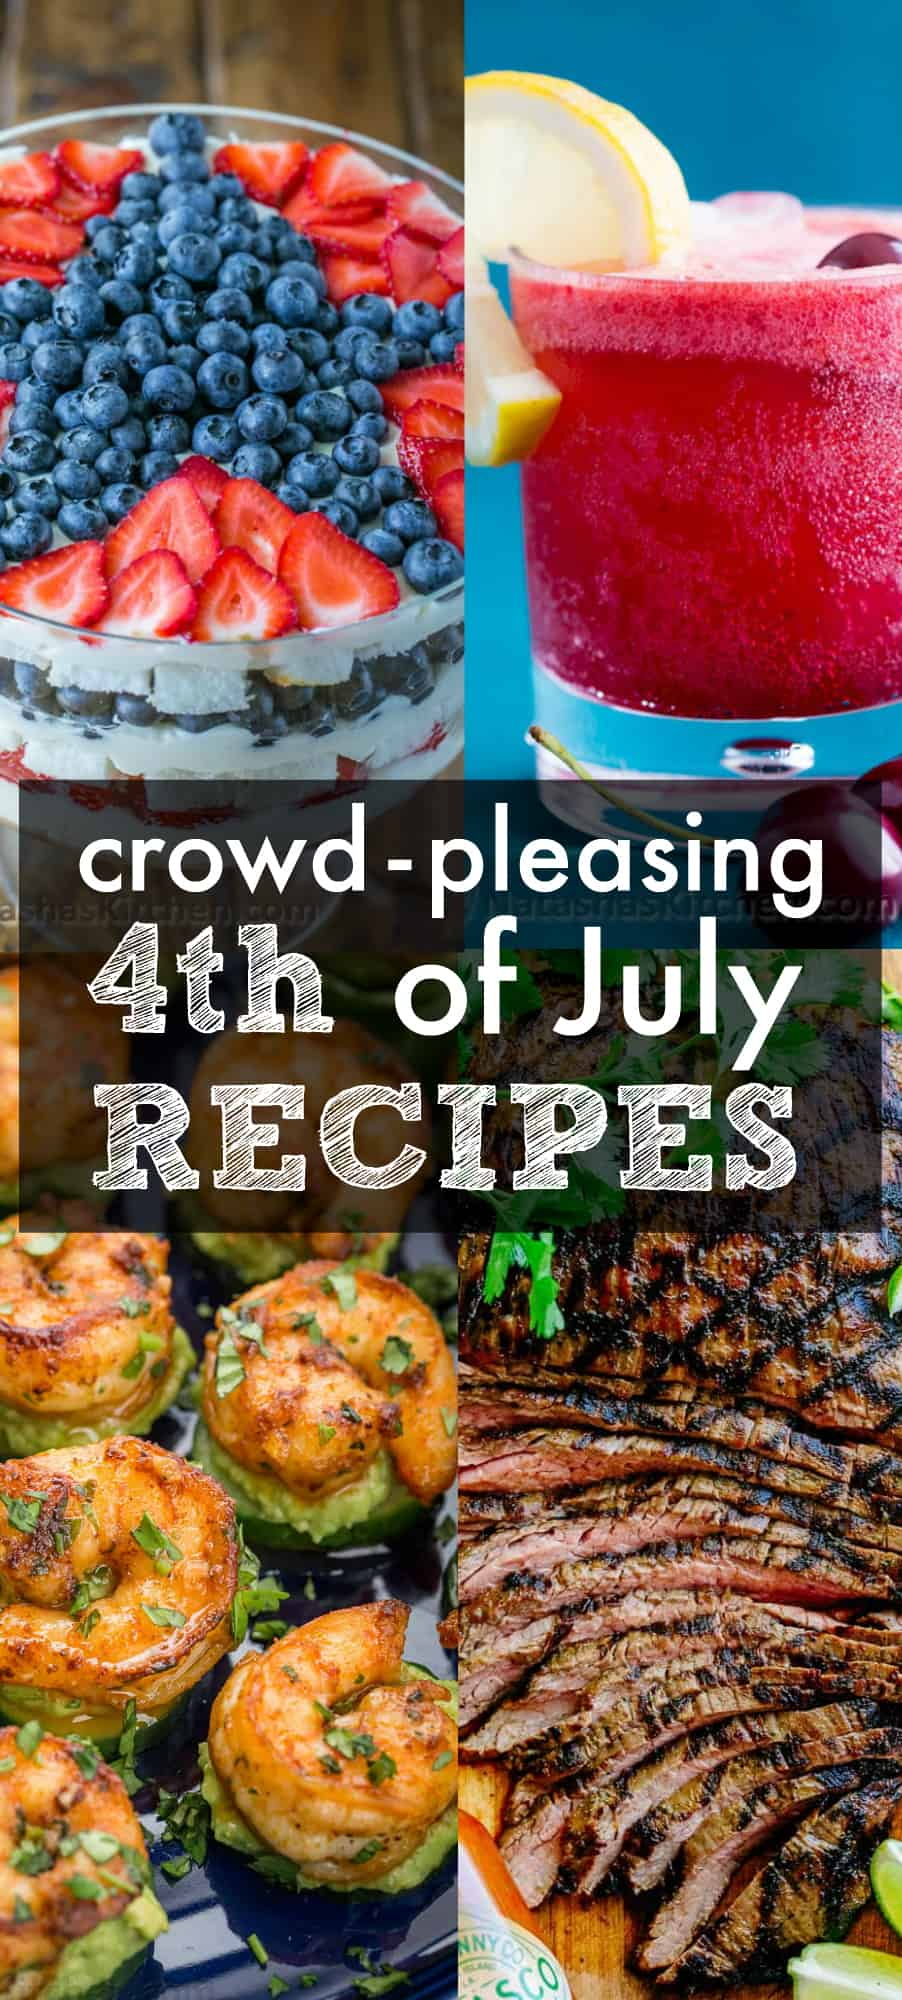 4th of July Recipes for our cookout from dinner to dessert, drinks and appetizers for the fourth of July